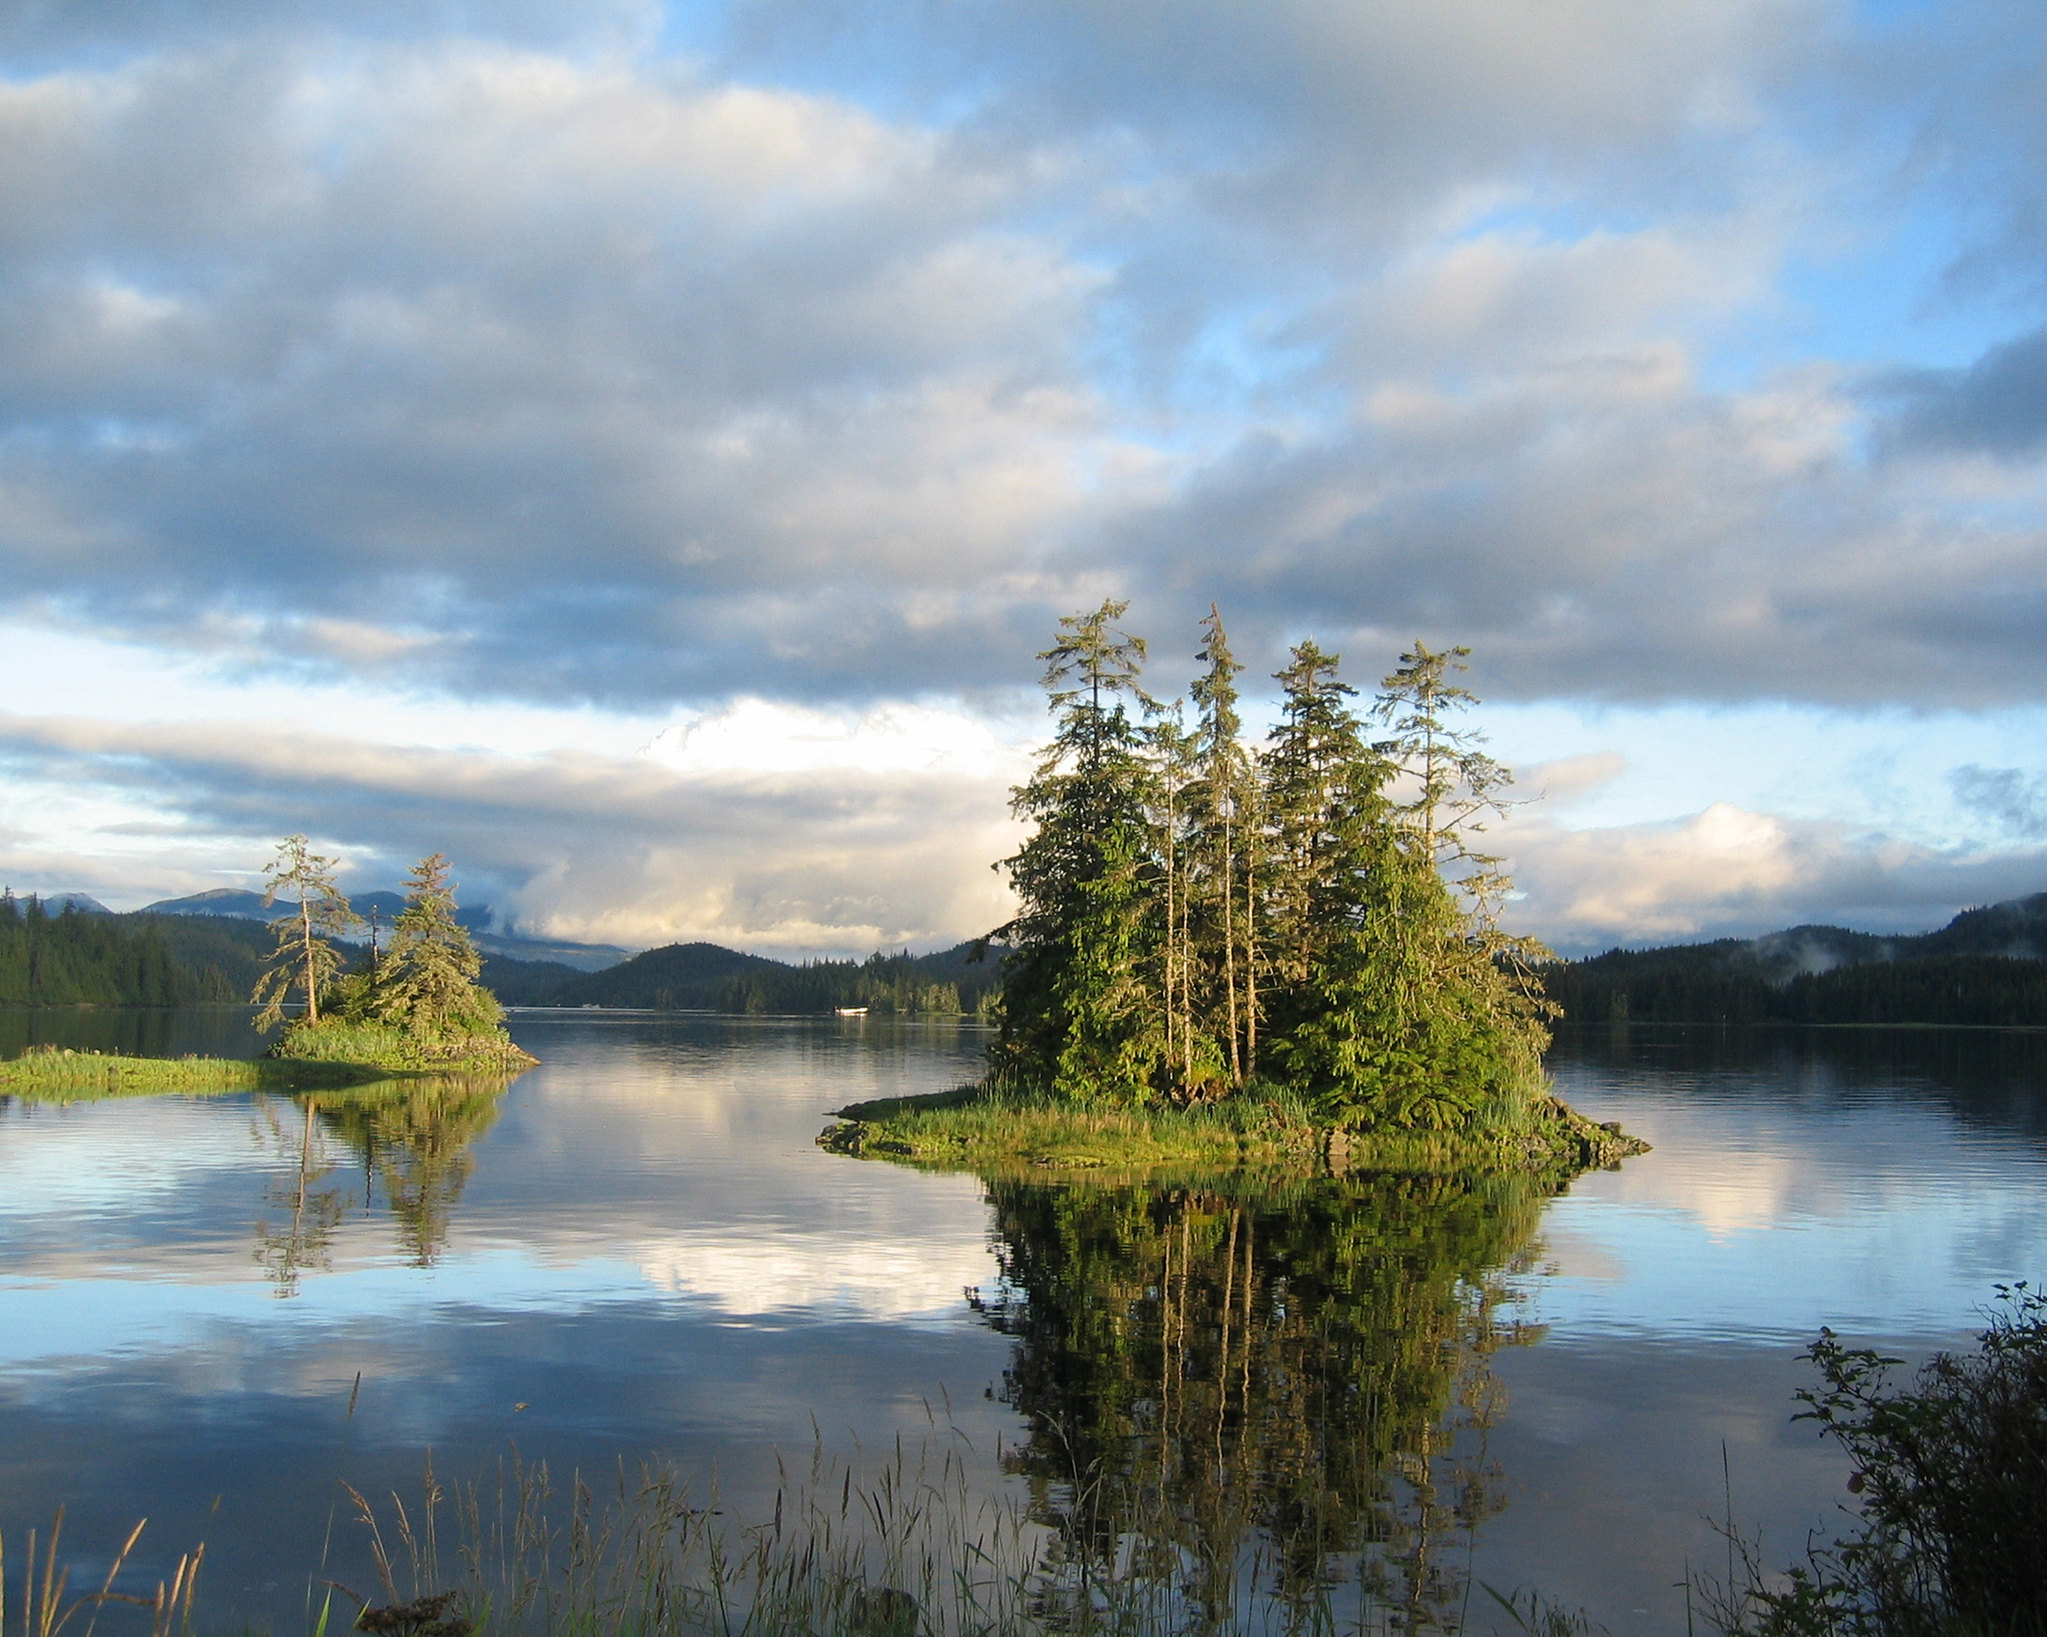 Thorne Bay in the Tongass National Forest